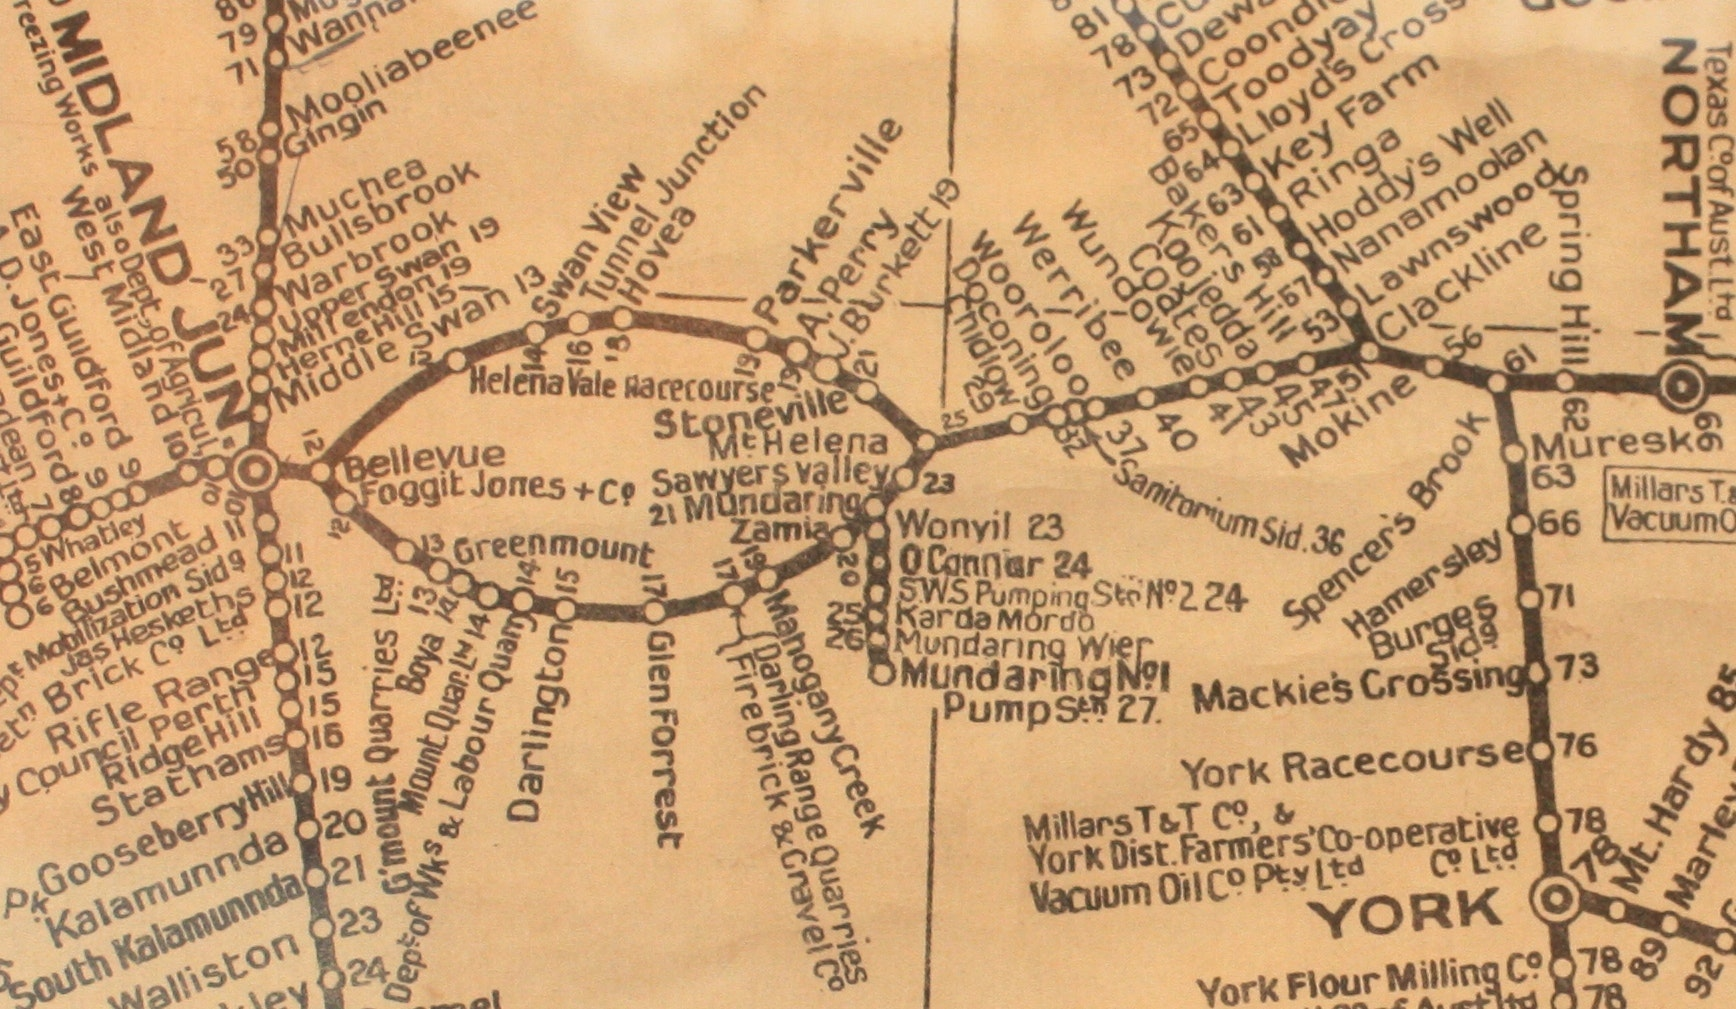 Old train map showing Kep track route